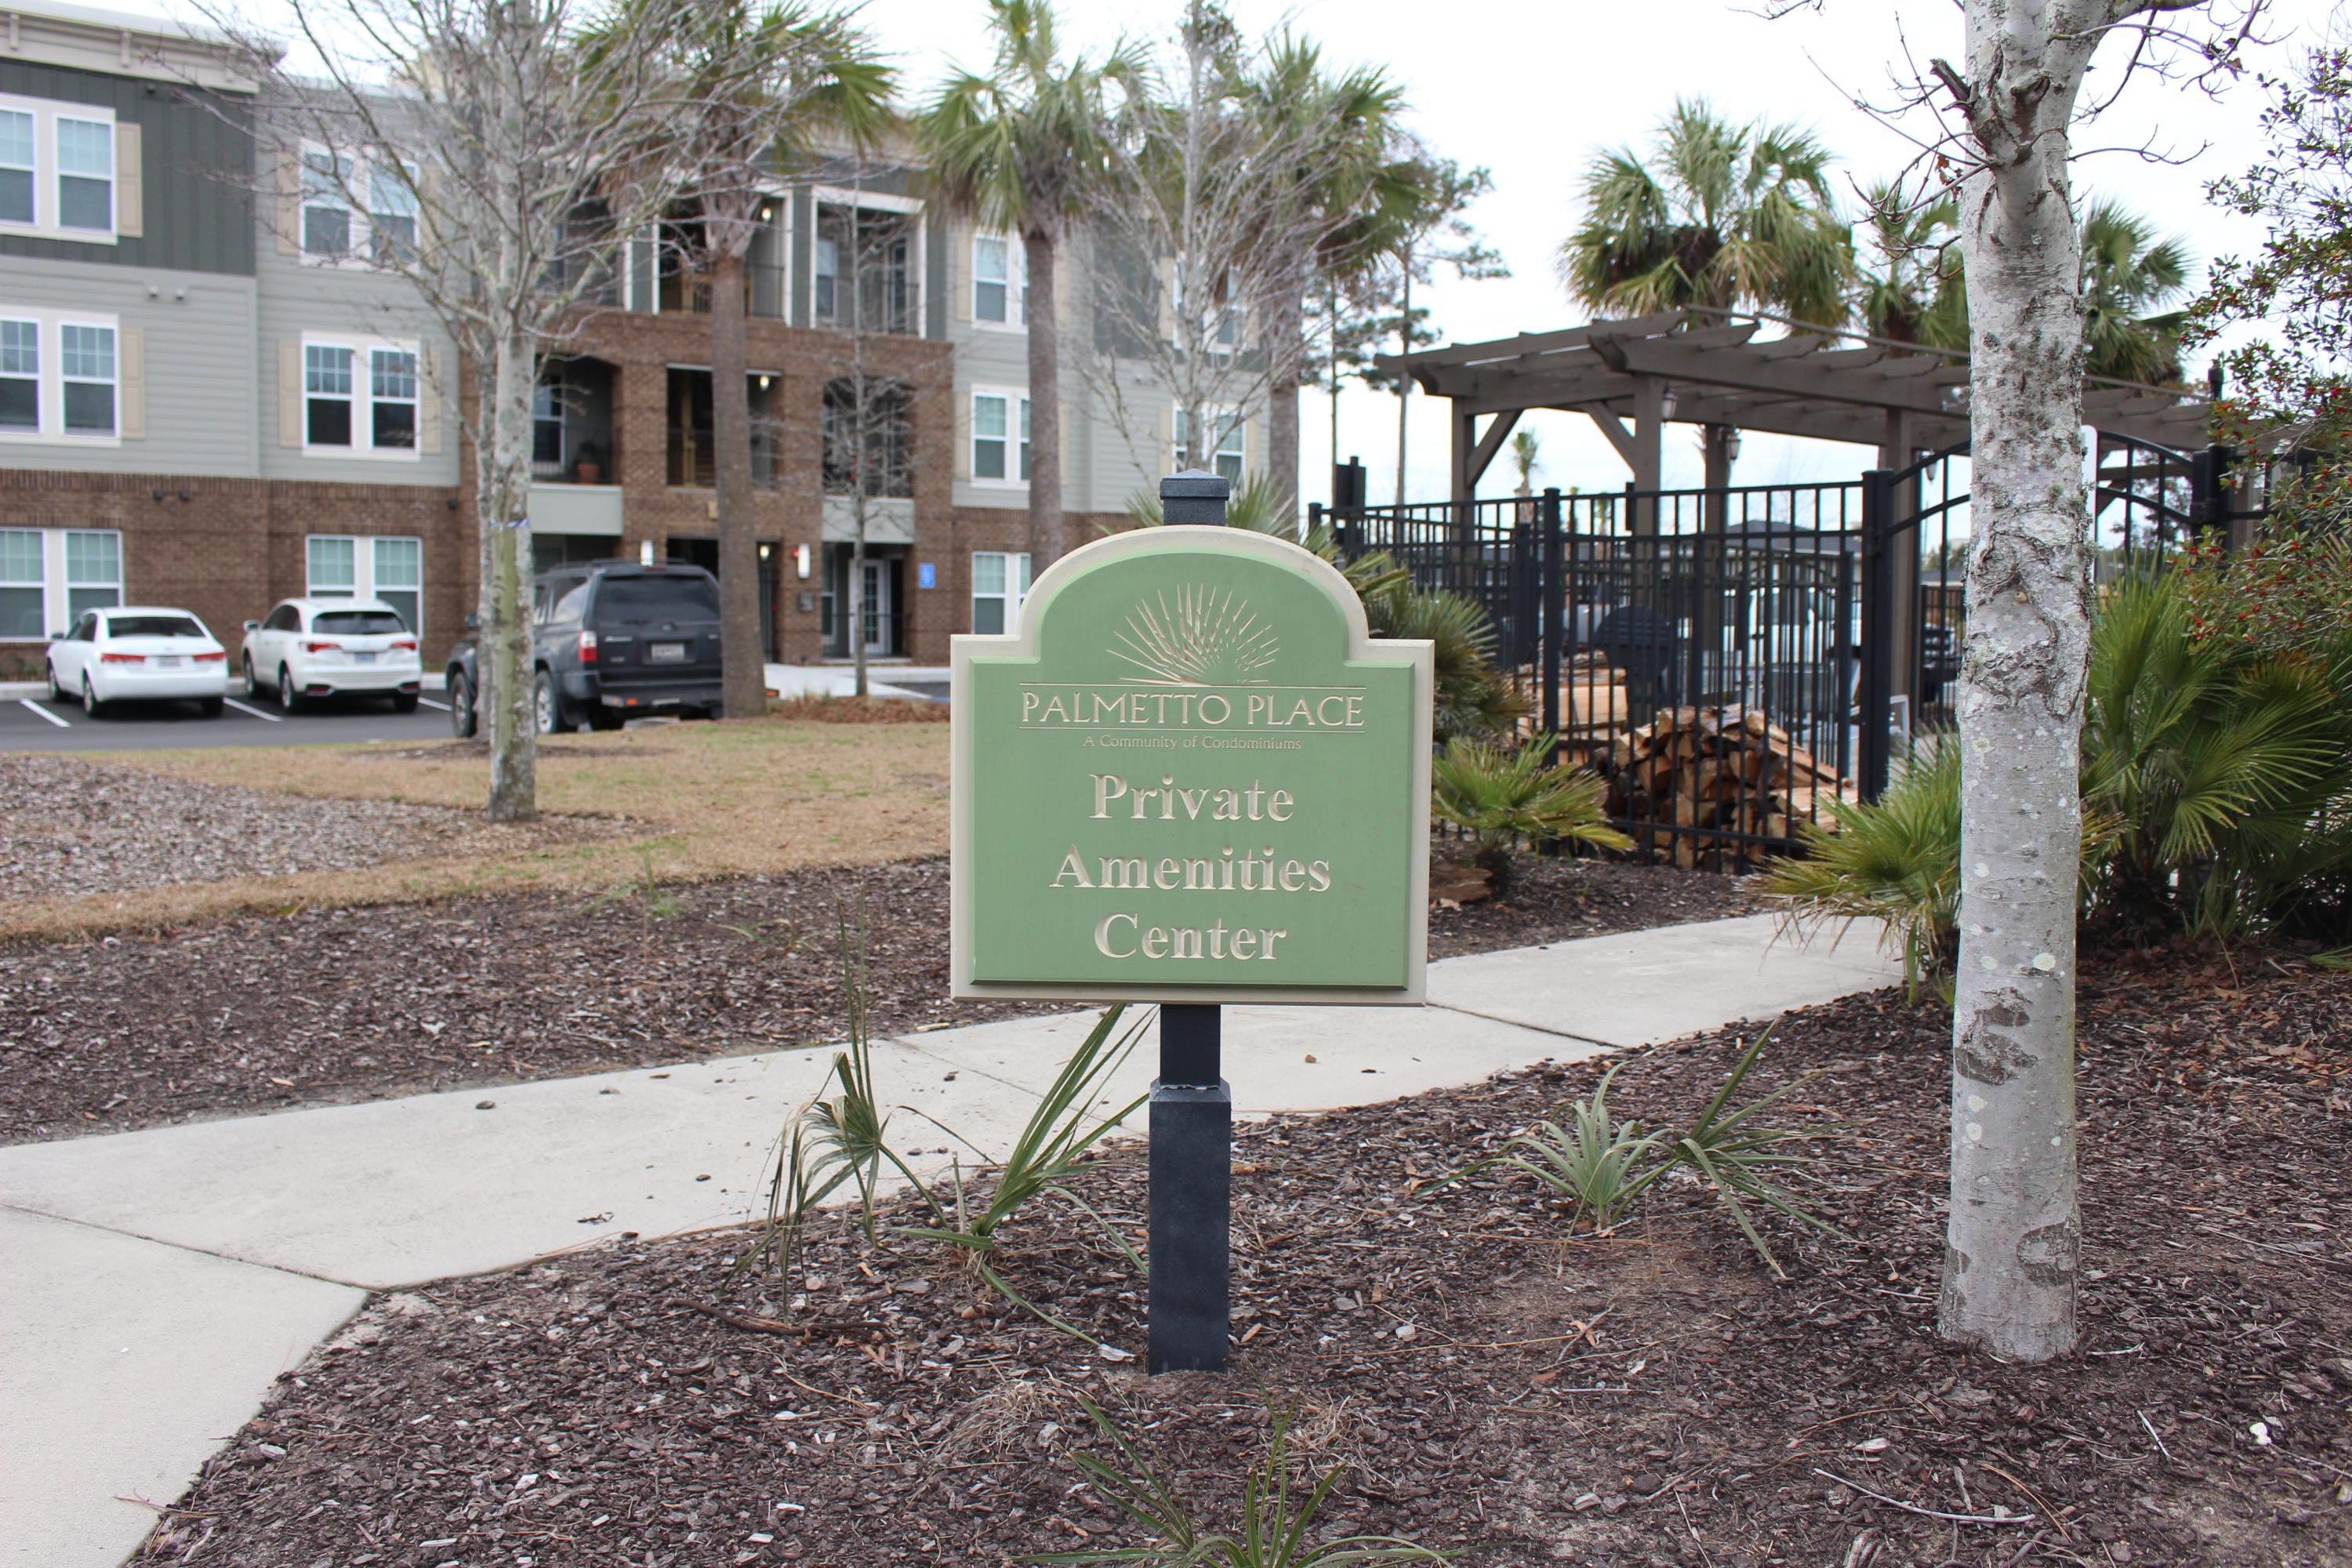 Palmetto Place Homes For Sale - 1030 Jack Primus, Charleston, SC - 4